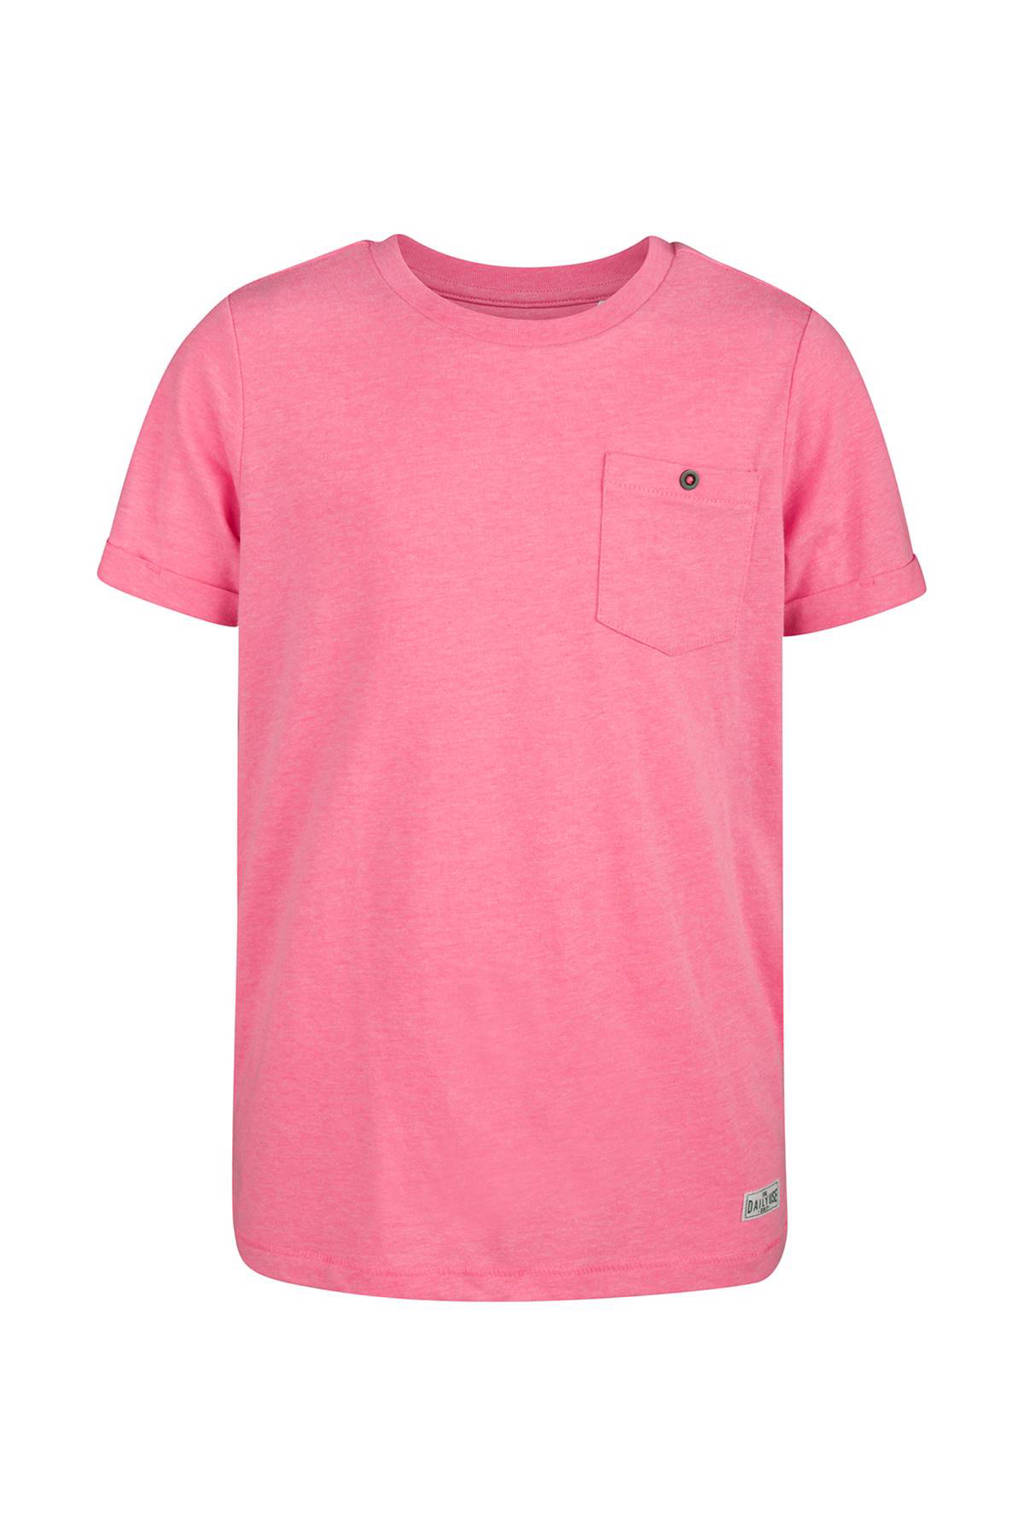 WE Fashion T-shirt, Roze